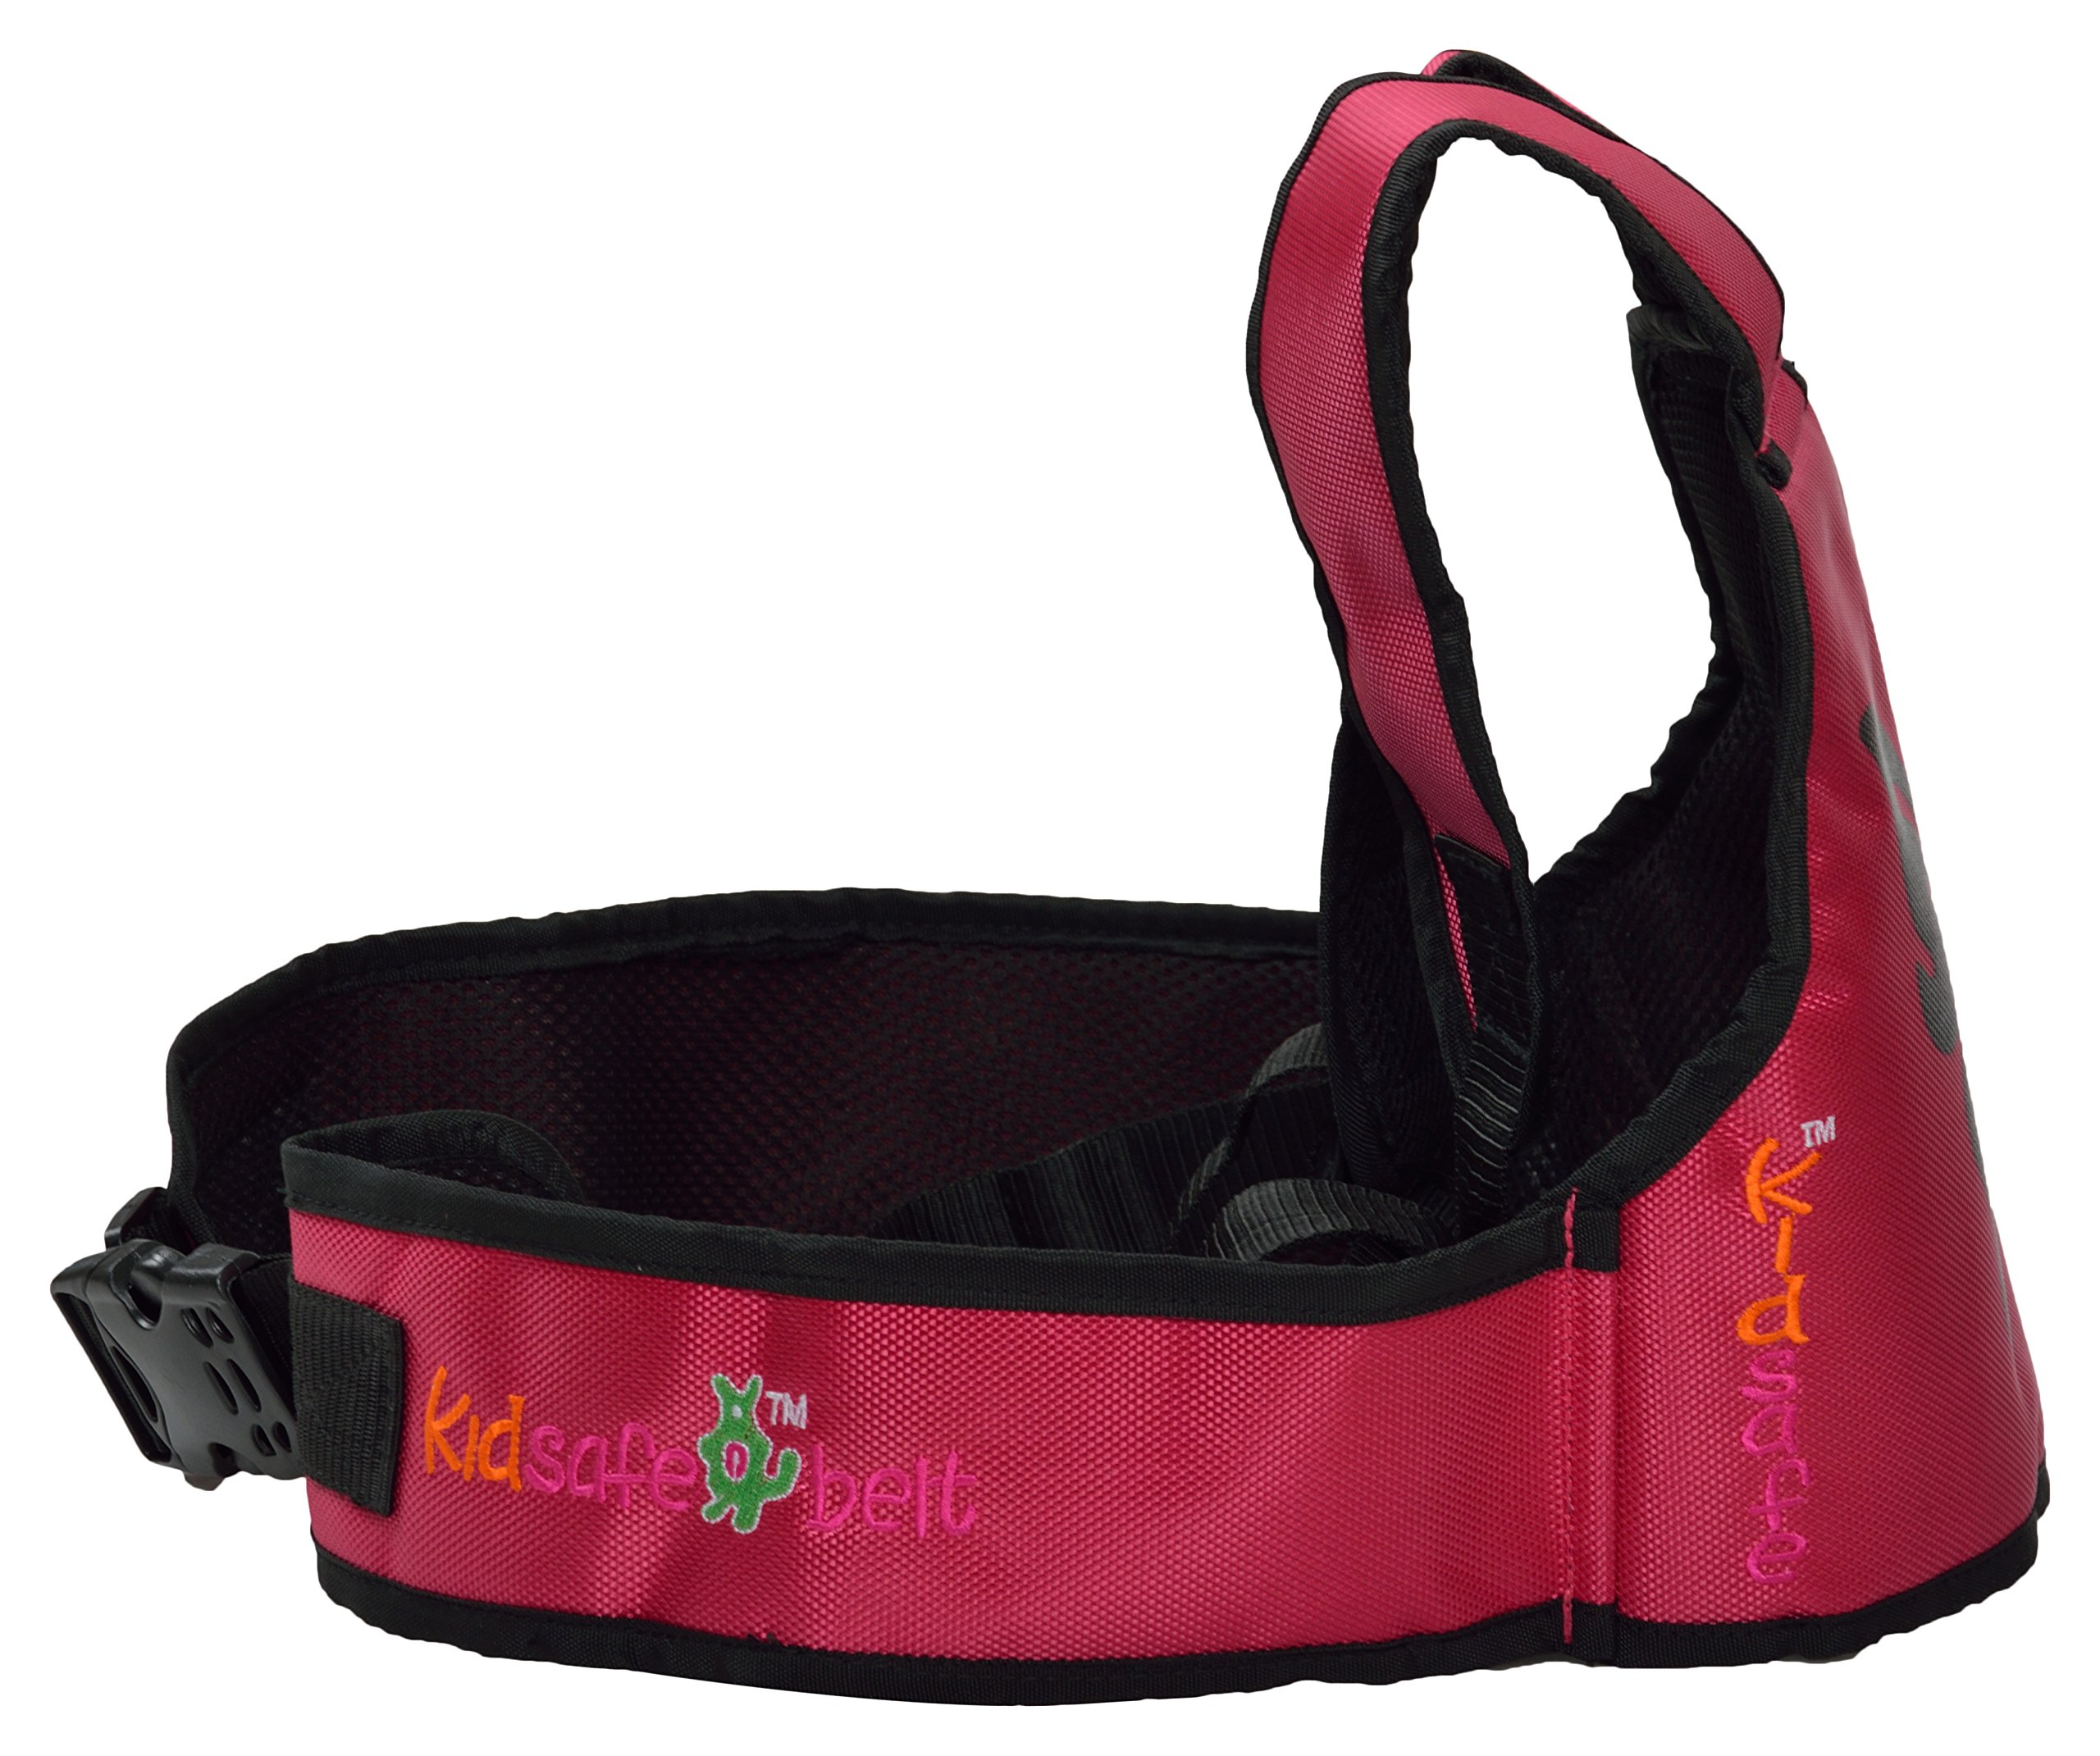 Kidsafe Belt - Two Wheeler Child Safety Belt - Cool Pink Butterfly by Kid-Safe (Image #5)